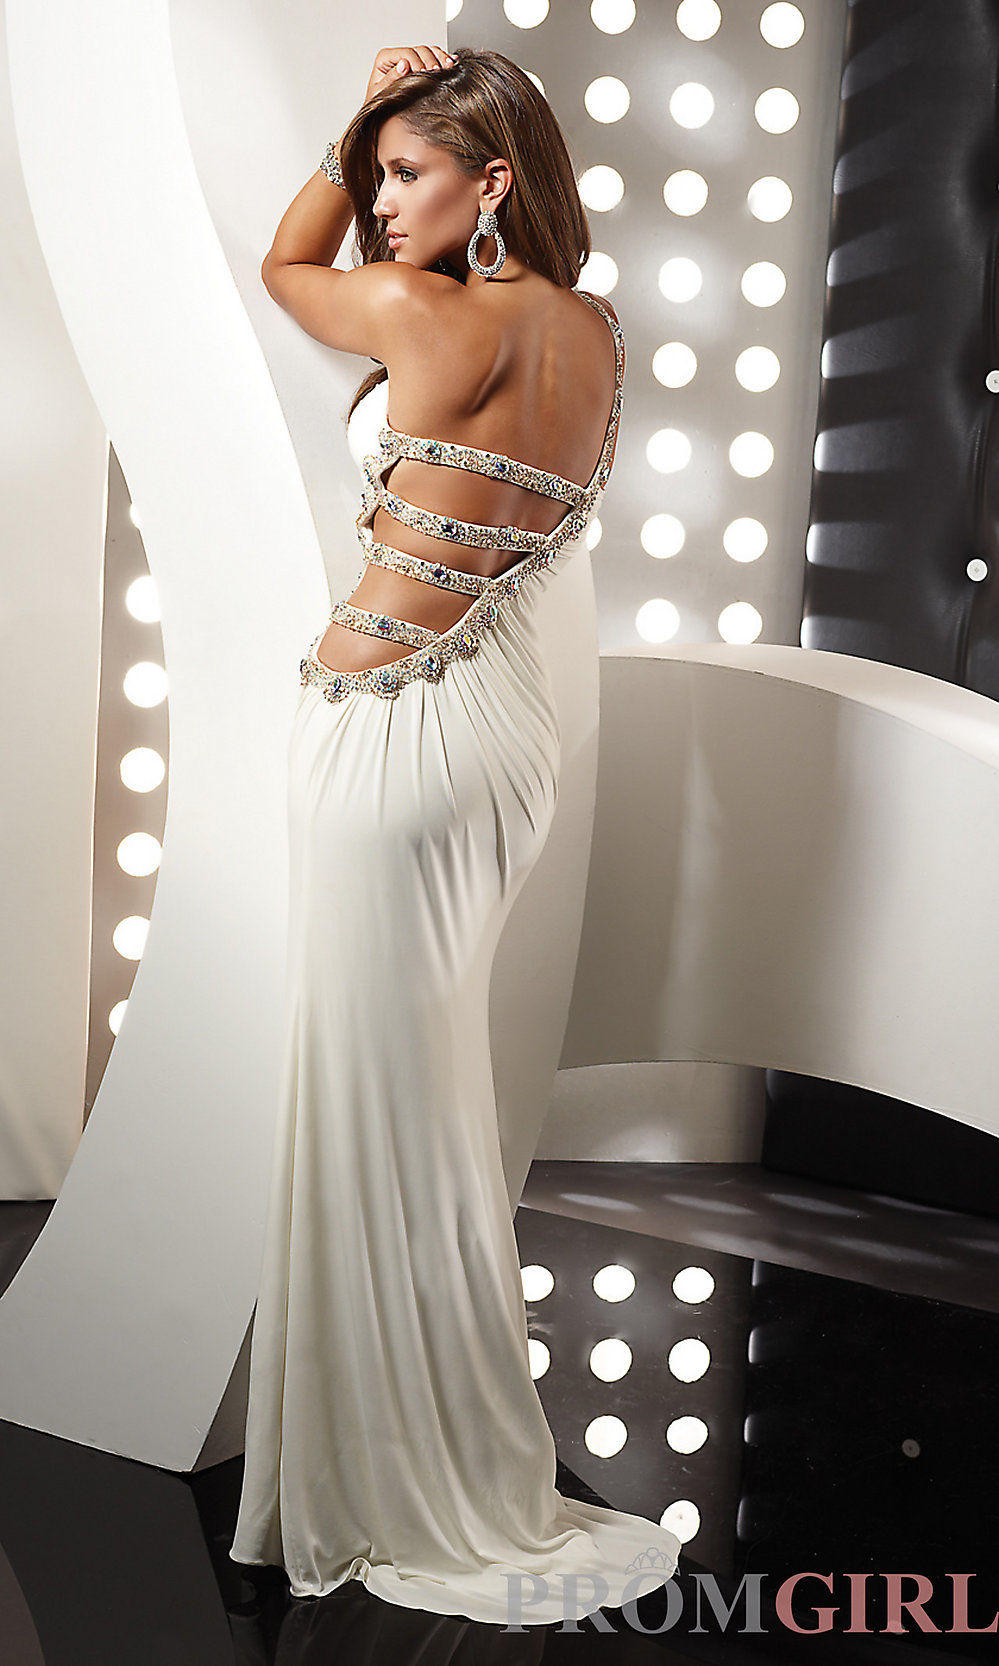 Really Awesome Prom Dress Pictures, Photos, and Images for ...